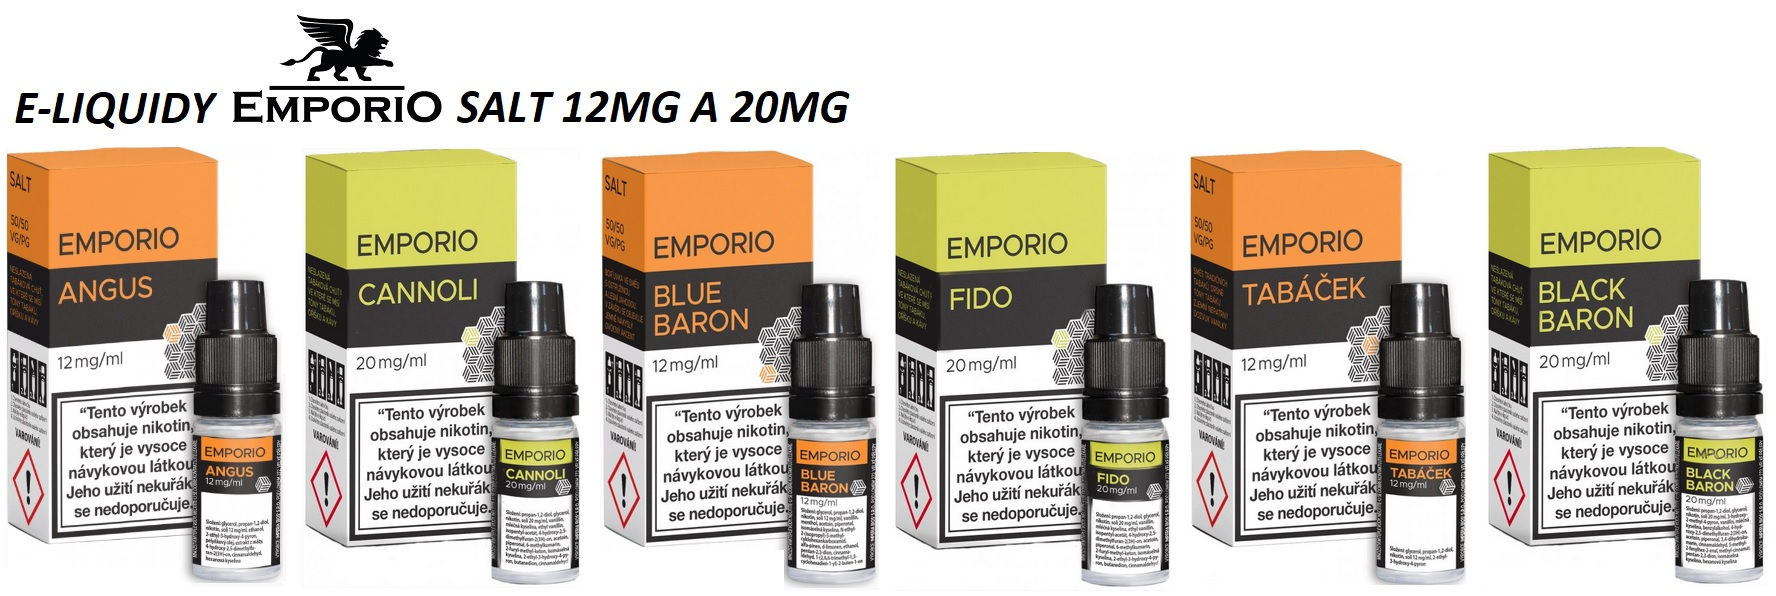 e-liquidy-emporio-salt-10ml-12mg-20mg